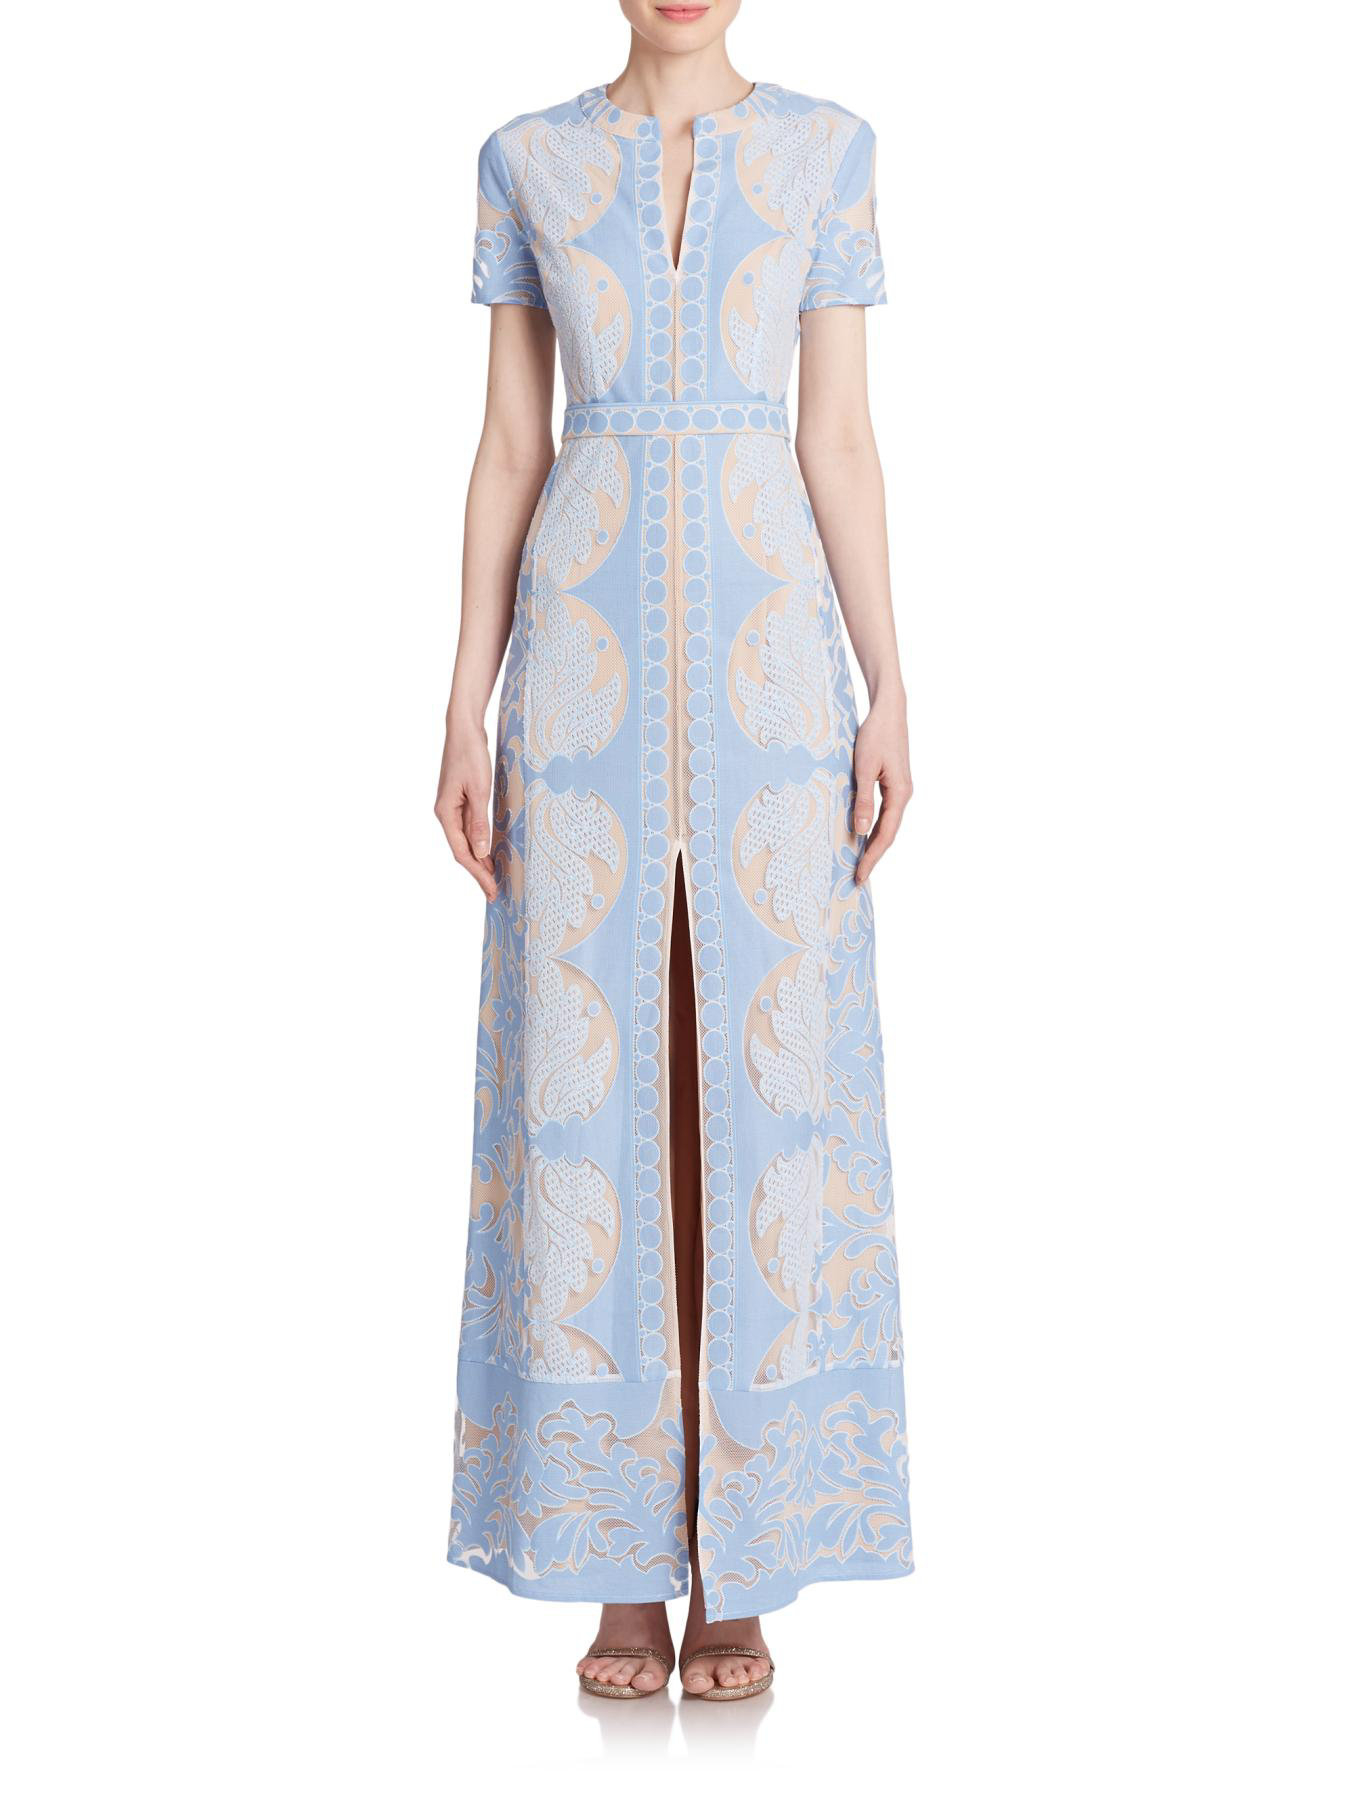 bf8600994f77 Lyst - BCBGMAXAZRIA Cailean Lace Maxi Dress in Blue